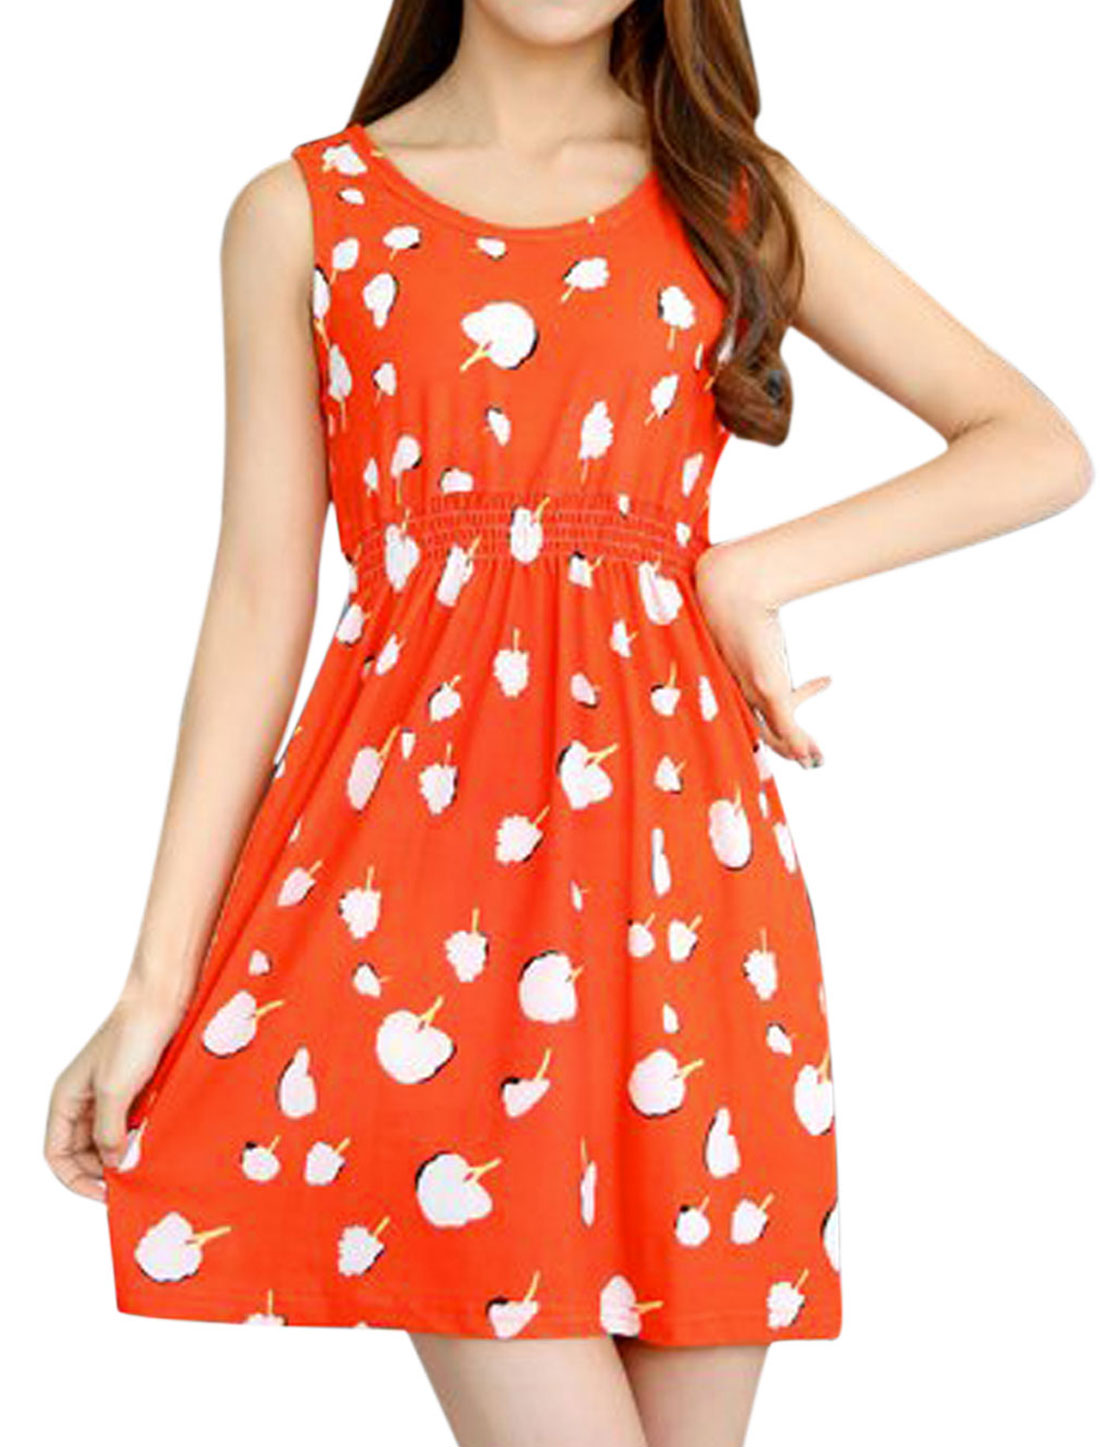 Woman Fruit Pattern Sleeveless Elastic Waist Unlined A Line Dress Orange XS